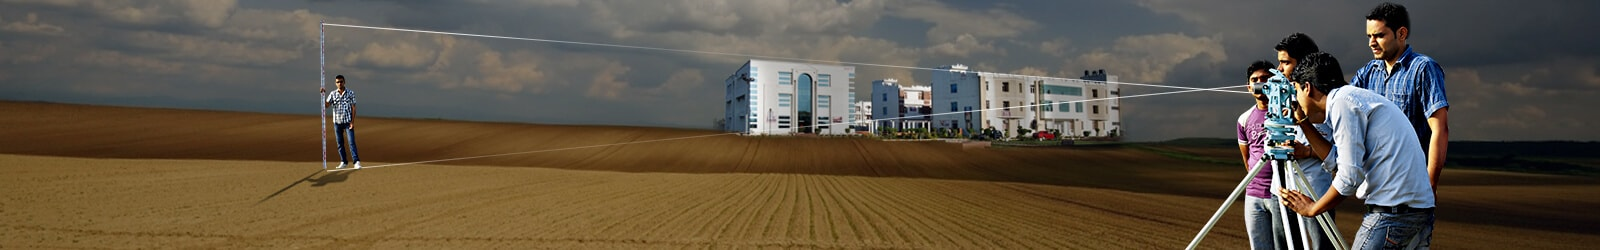 Geeta Engineering College in Haryana